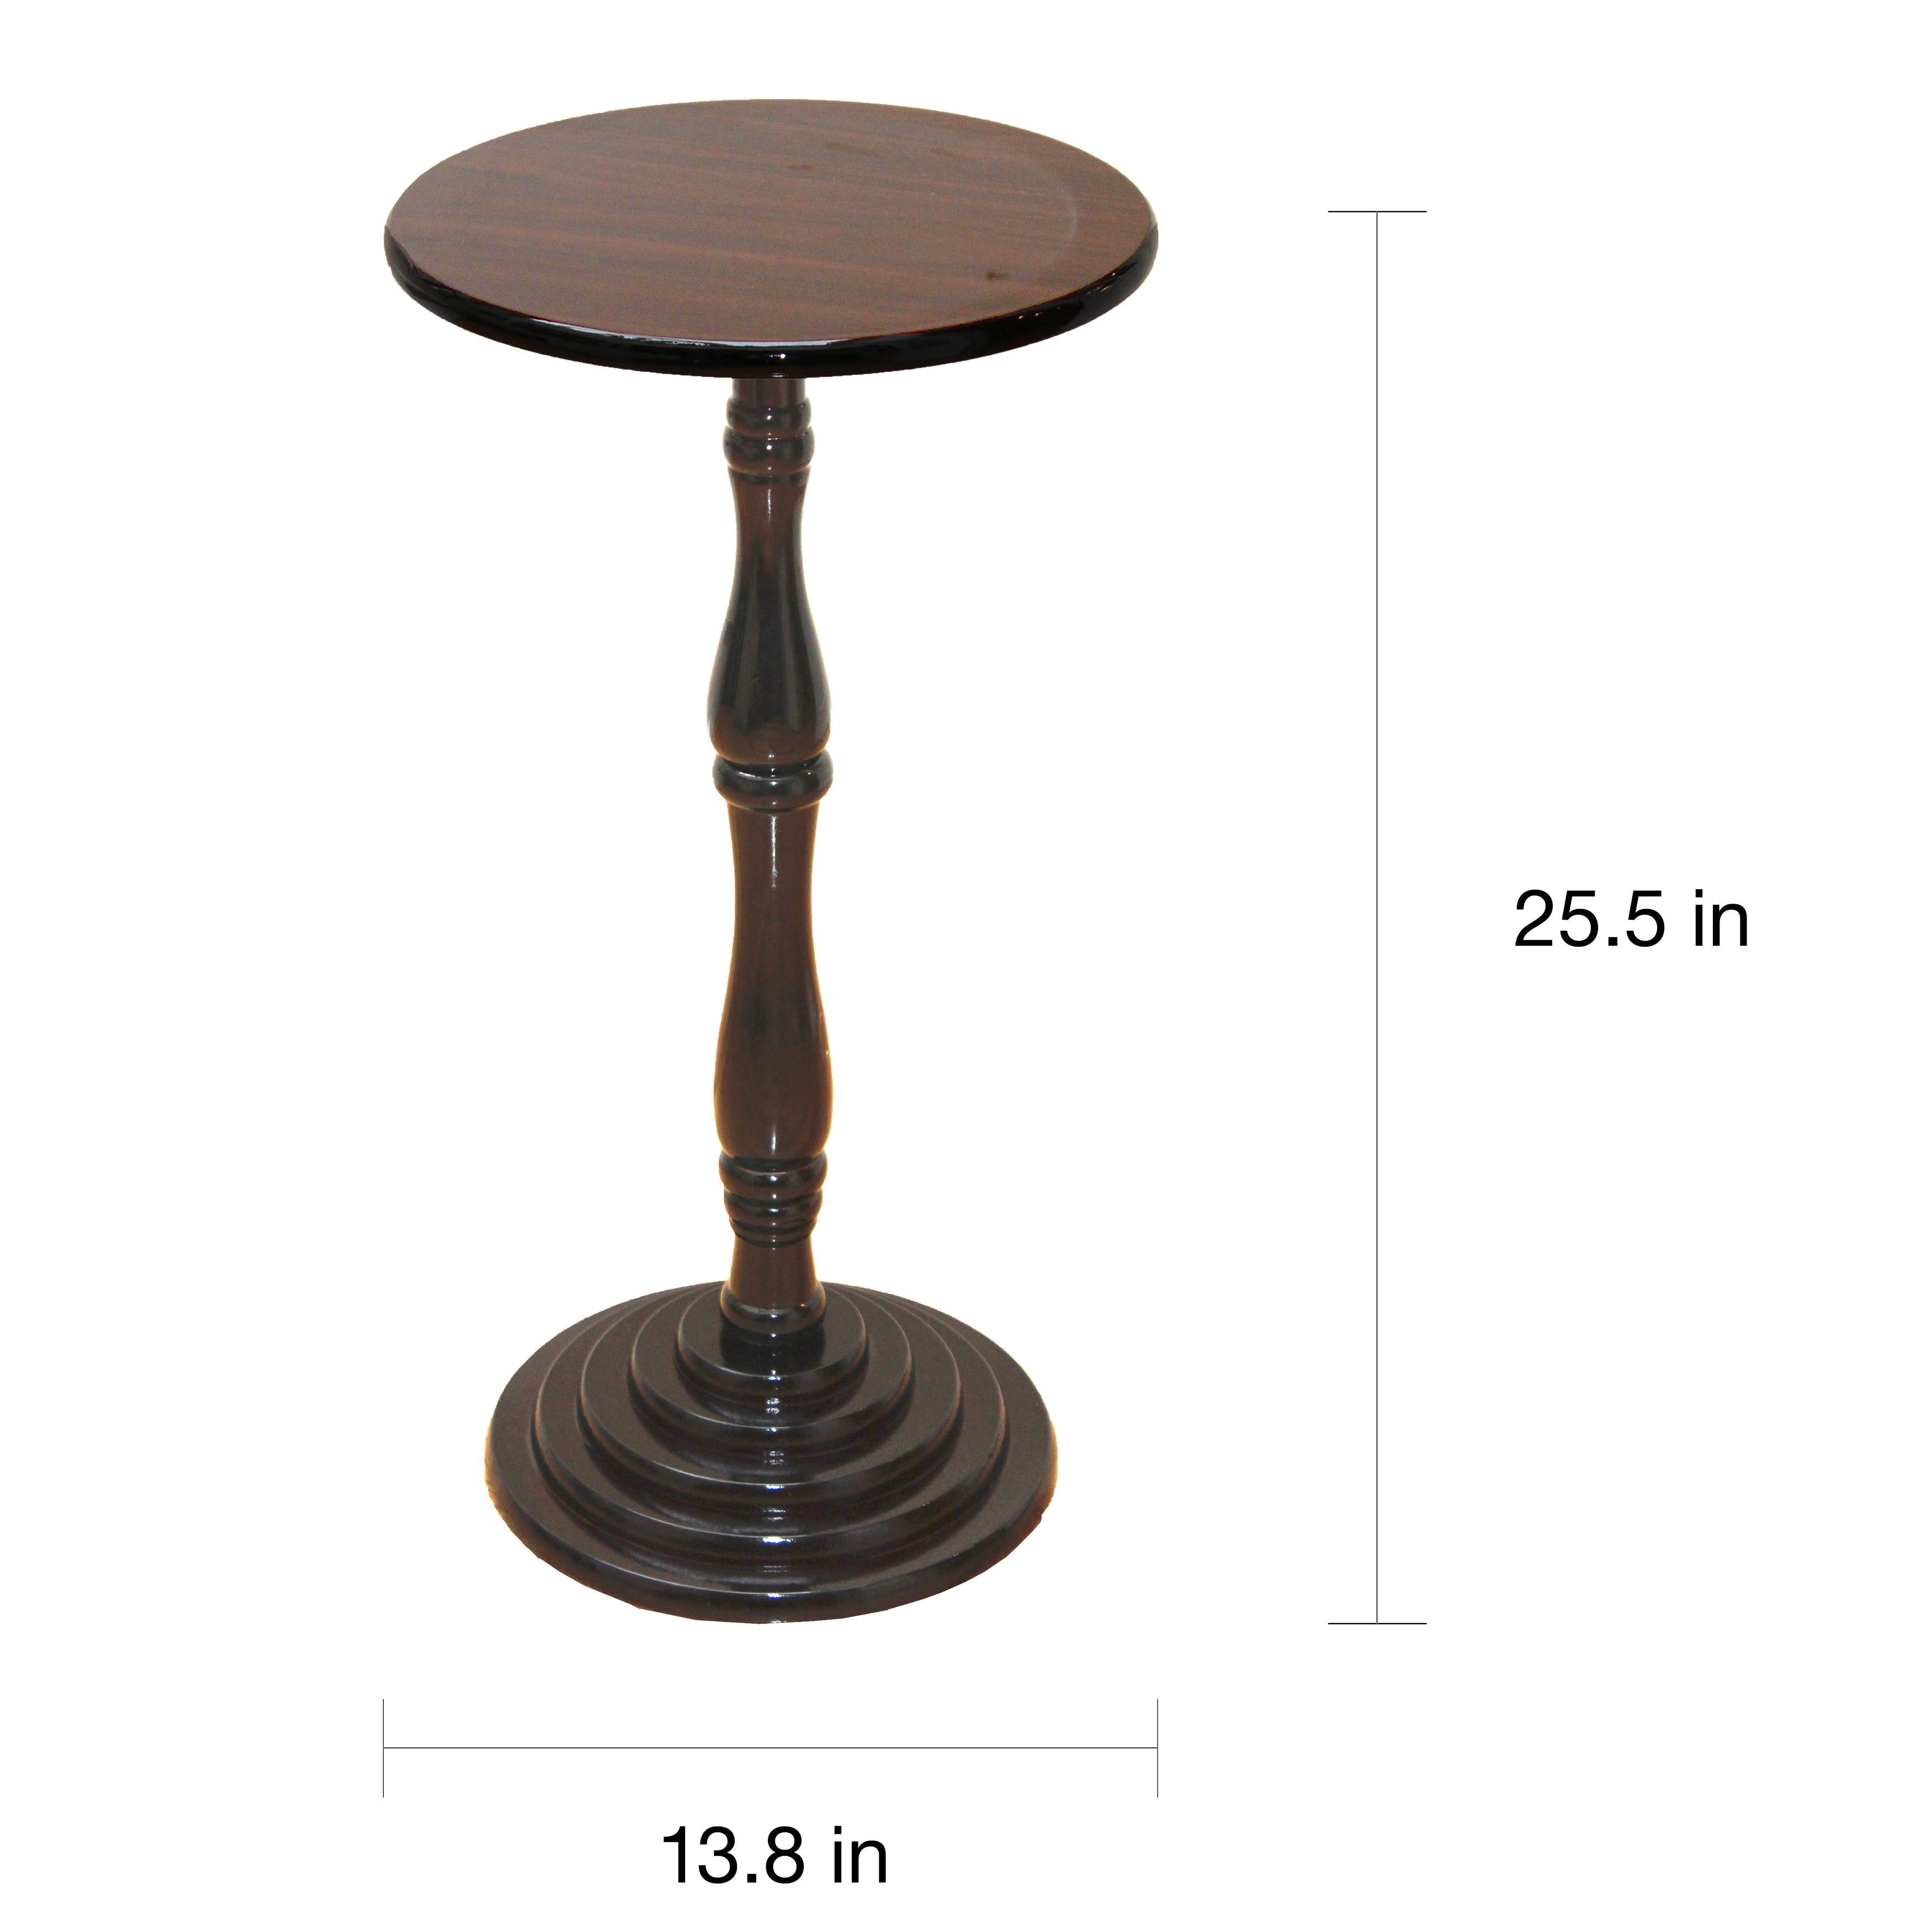 espresso round pedestal accent side end table free shipping wood console chair cherry lamp square wall clock kitchen dining room collections modern design sofa brown tiny lamps